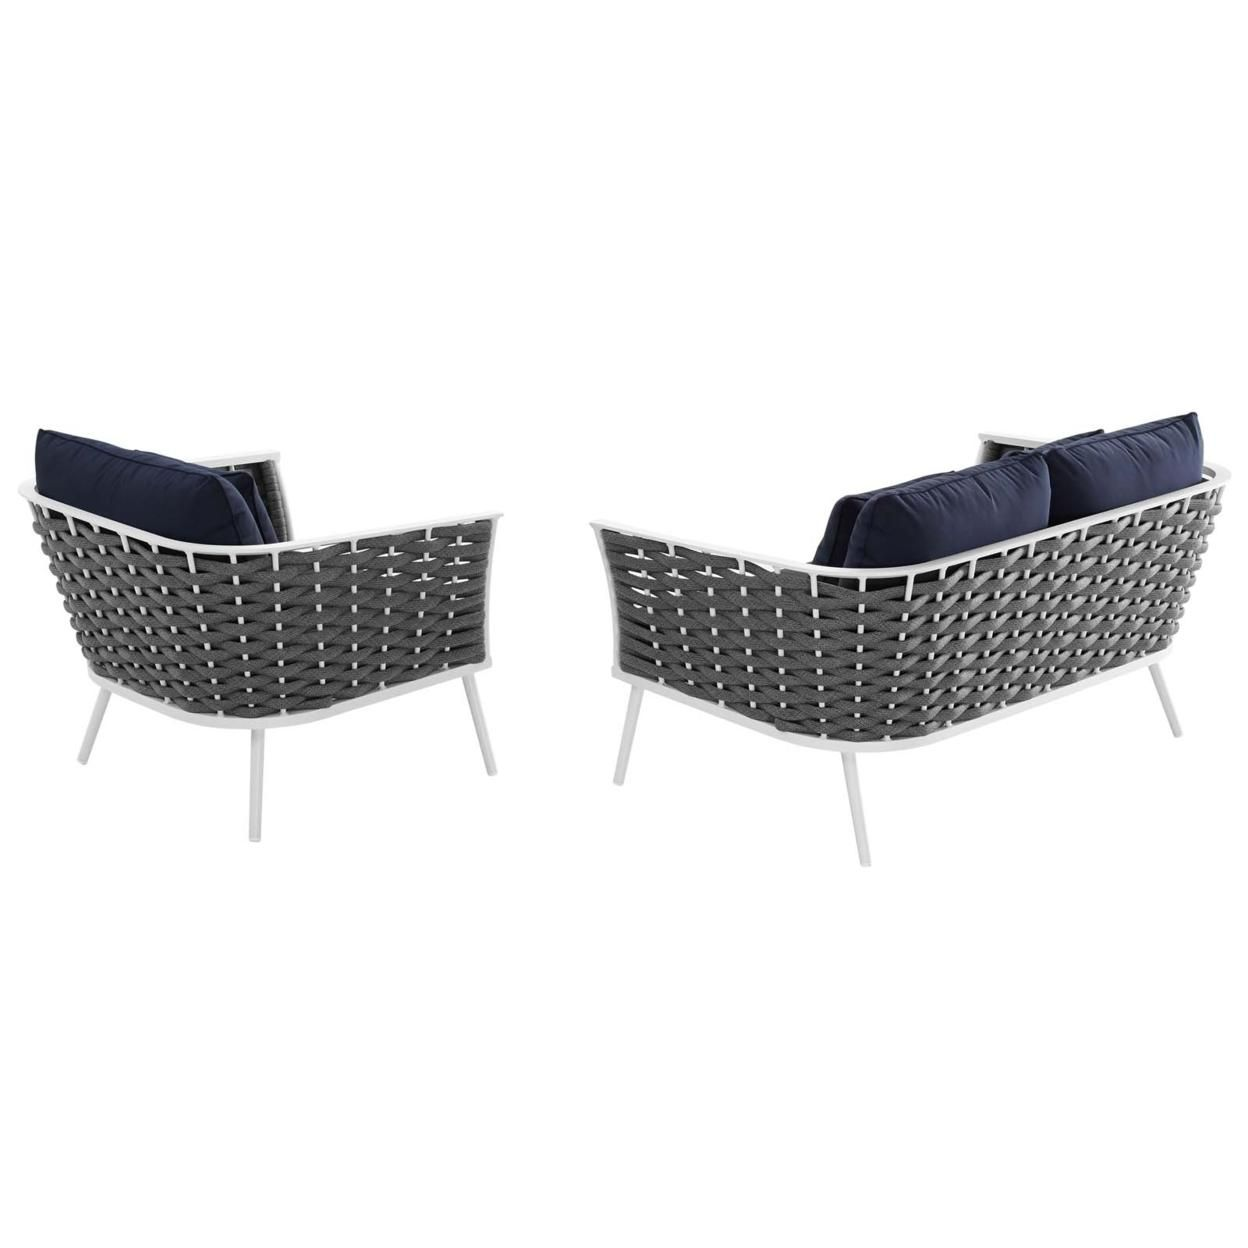 Stance 2 Piece Outdoor Patio Aluminum Sectional Sofa Set, White Navy